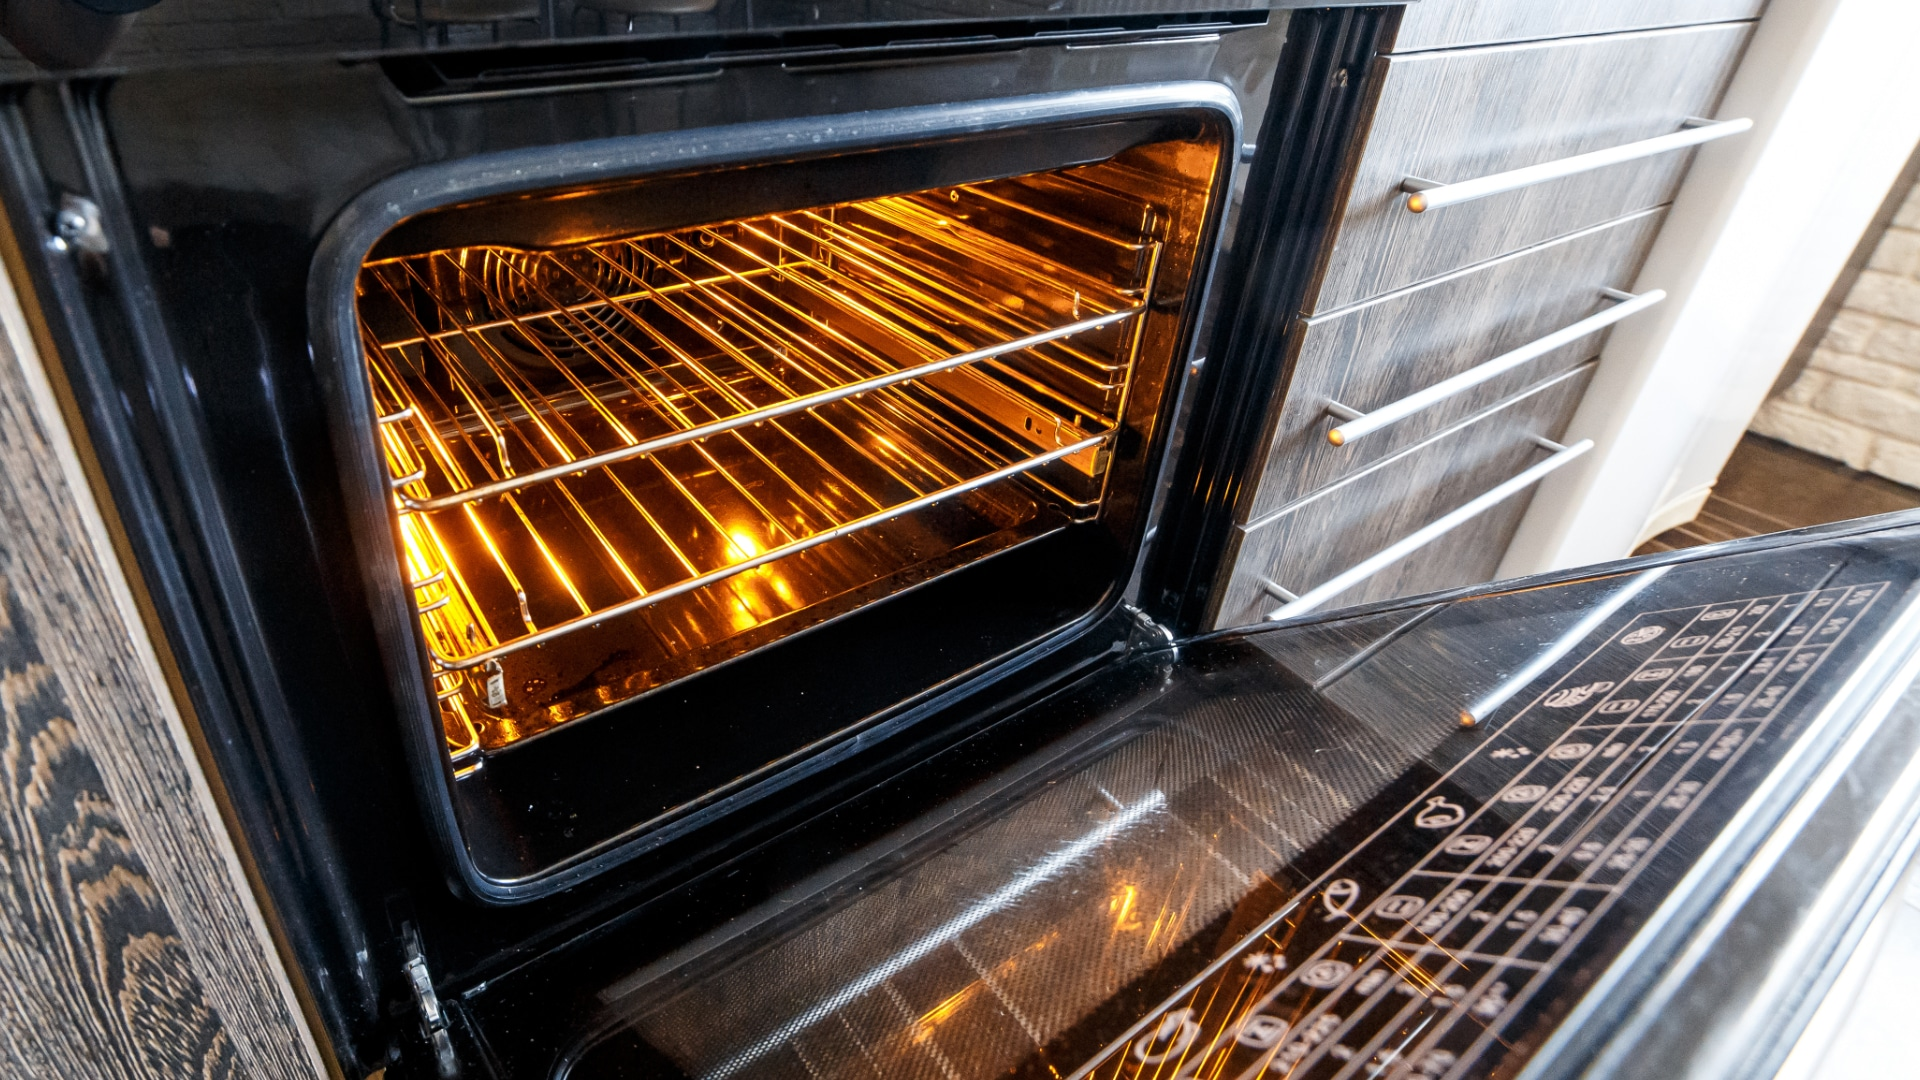 """Featured image for """"Oven Won't Turn On? Here's What to Do"""""""